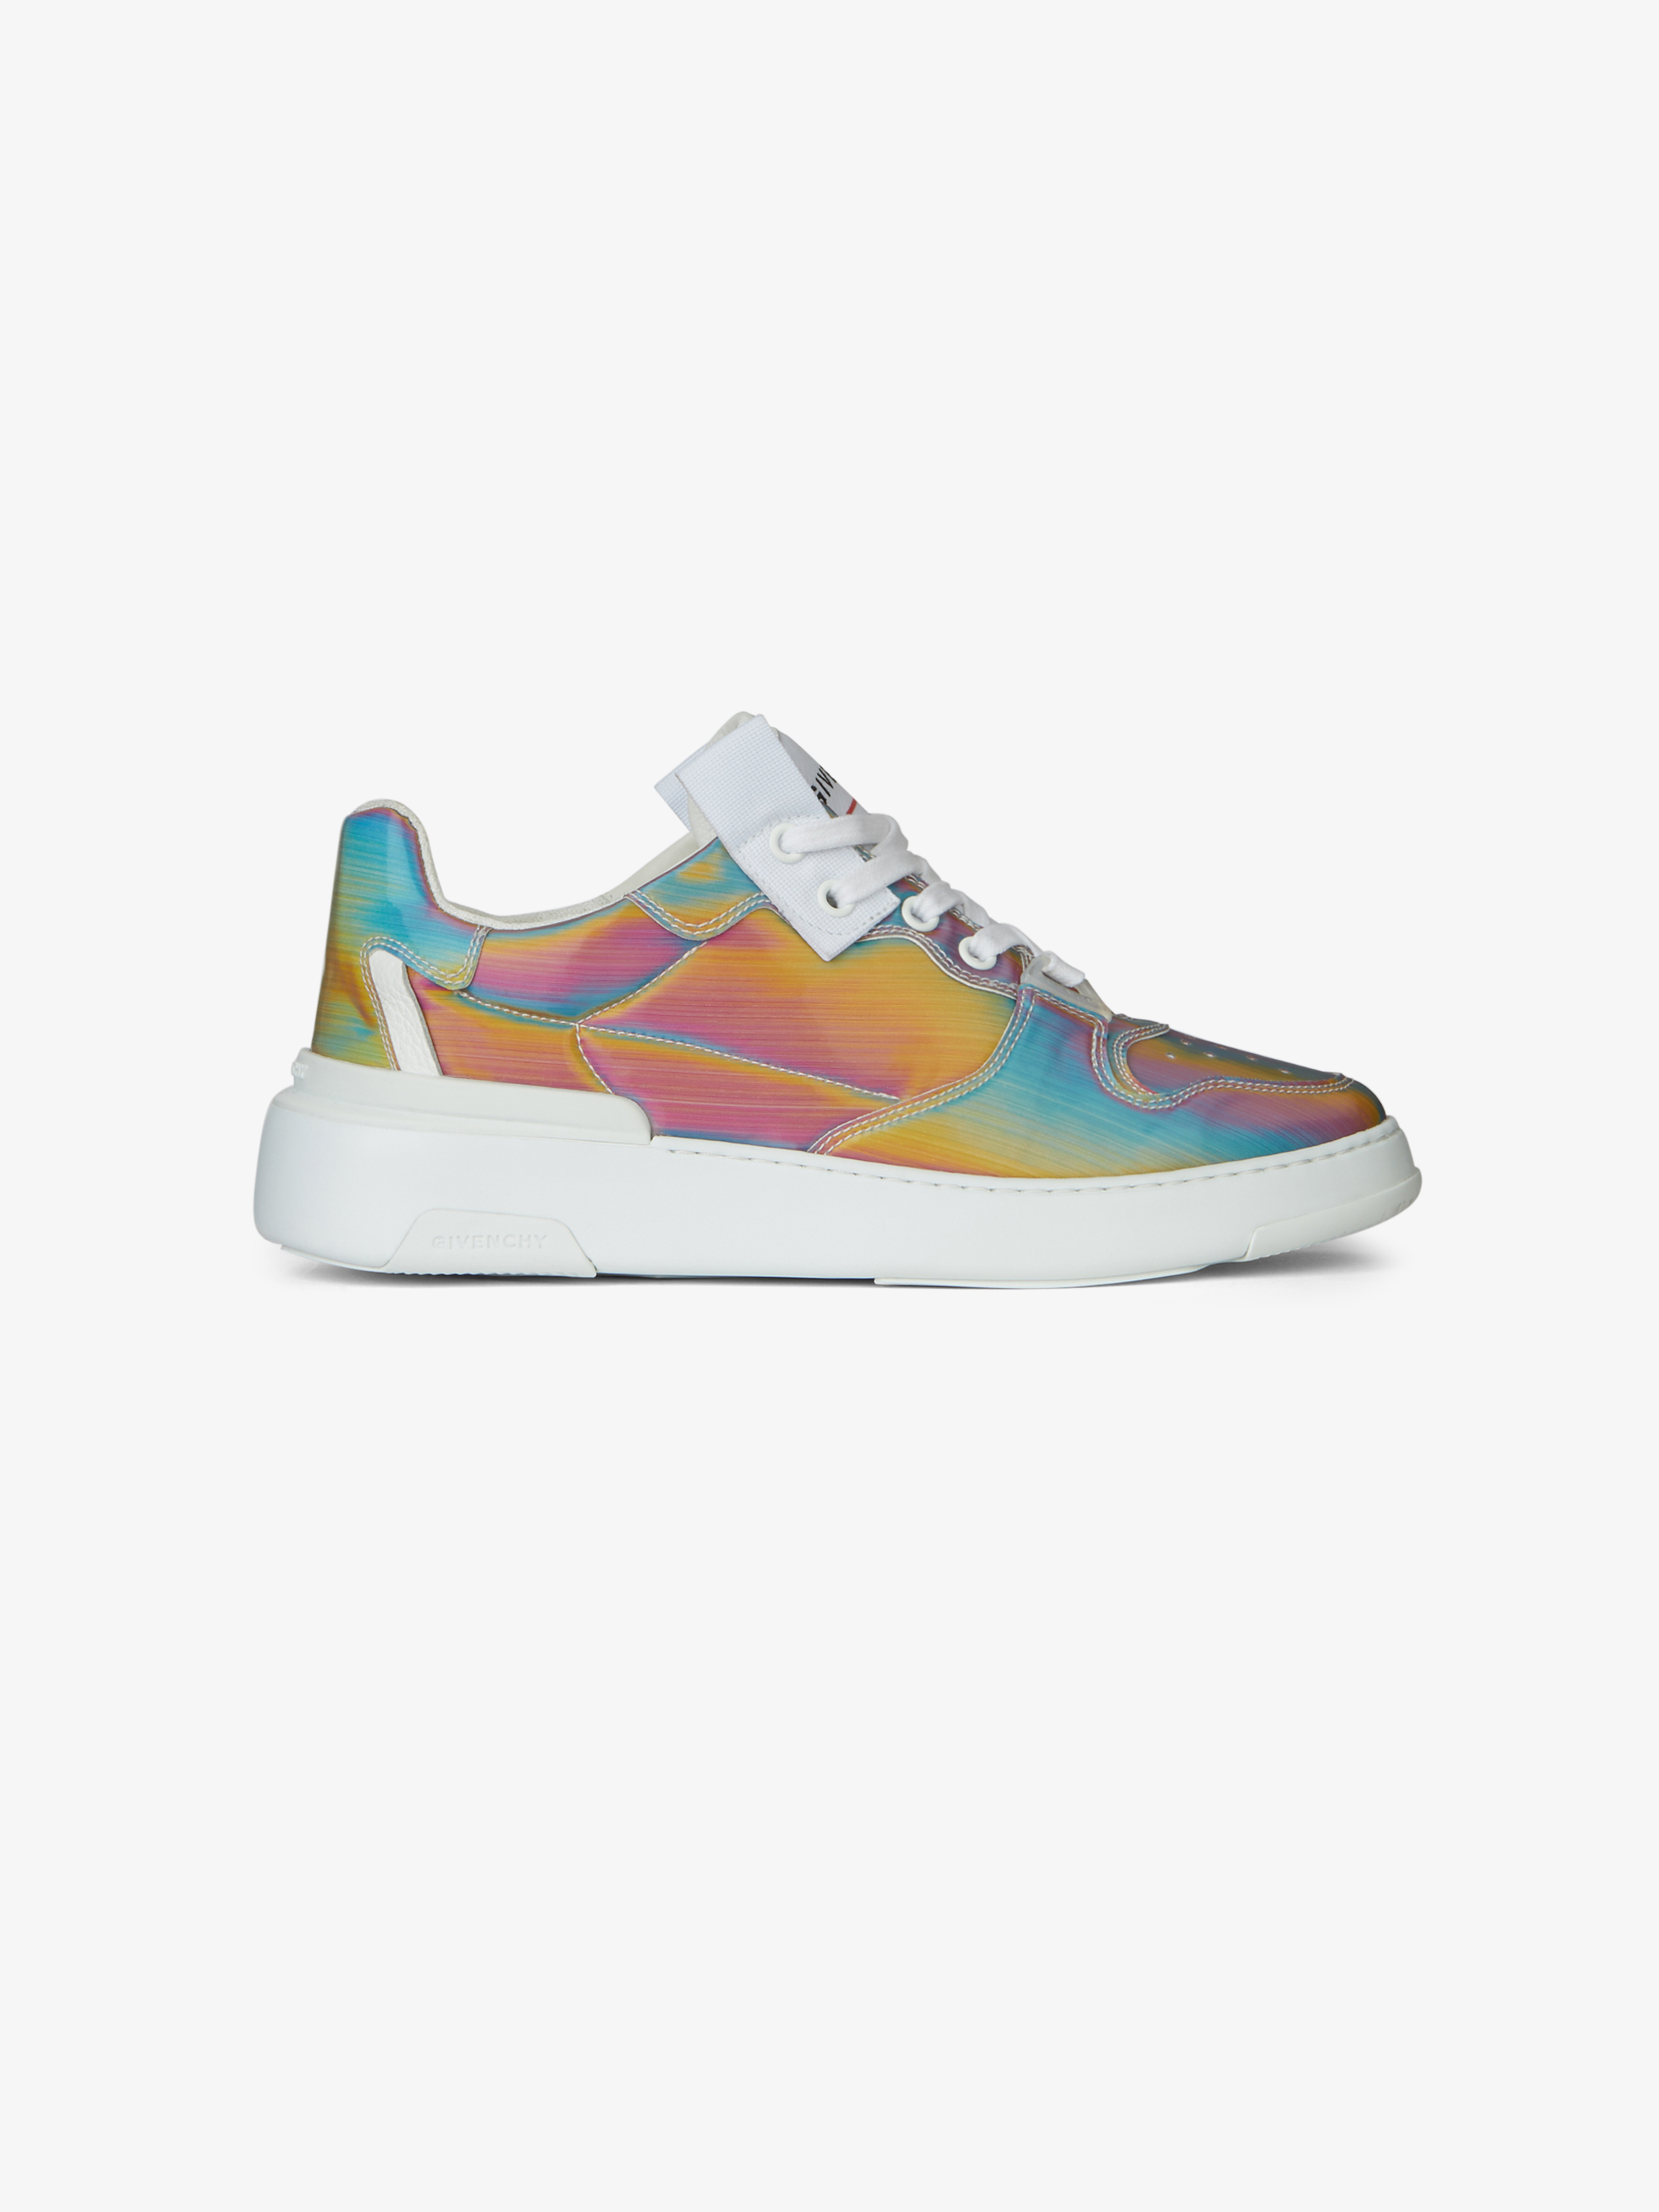 Sneakers basses Wing en toile holographique